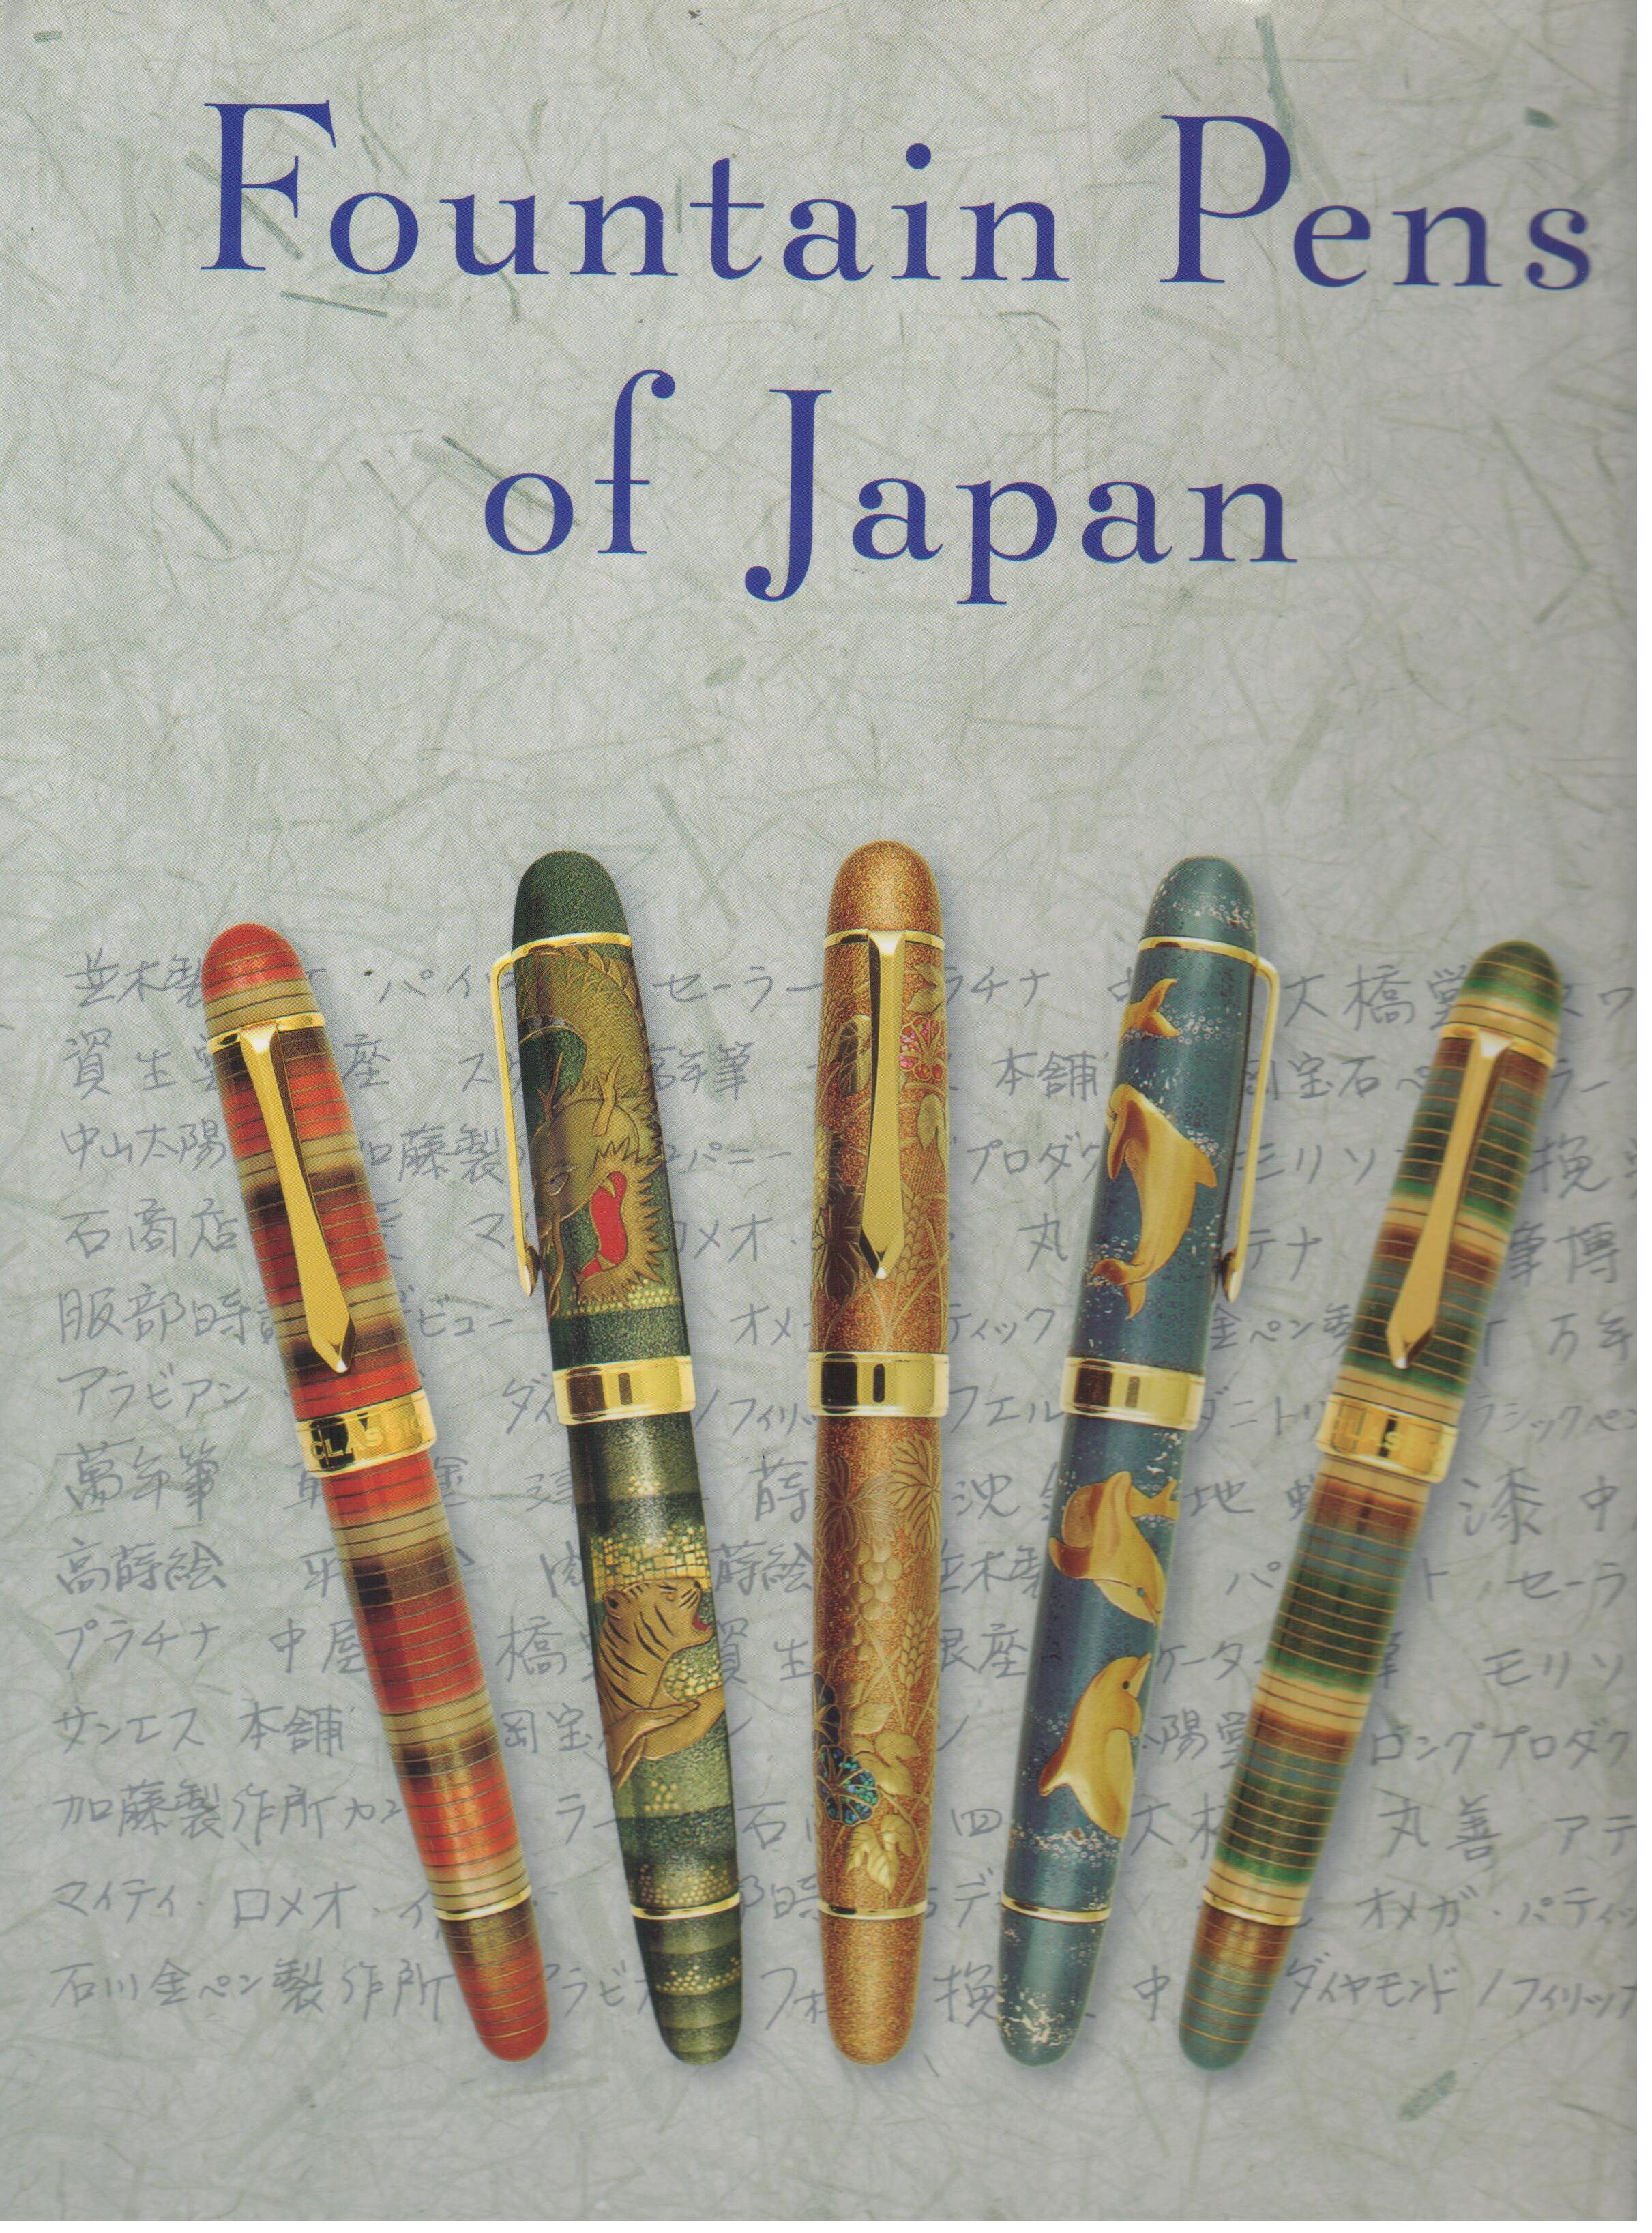 Fountain Pens of Japan